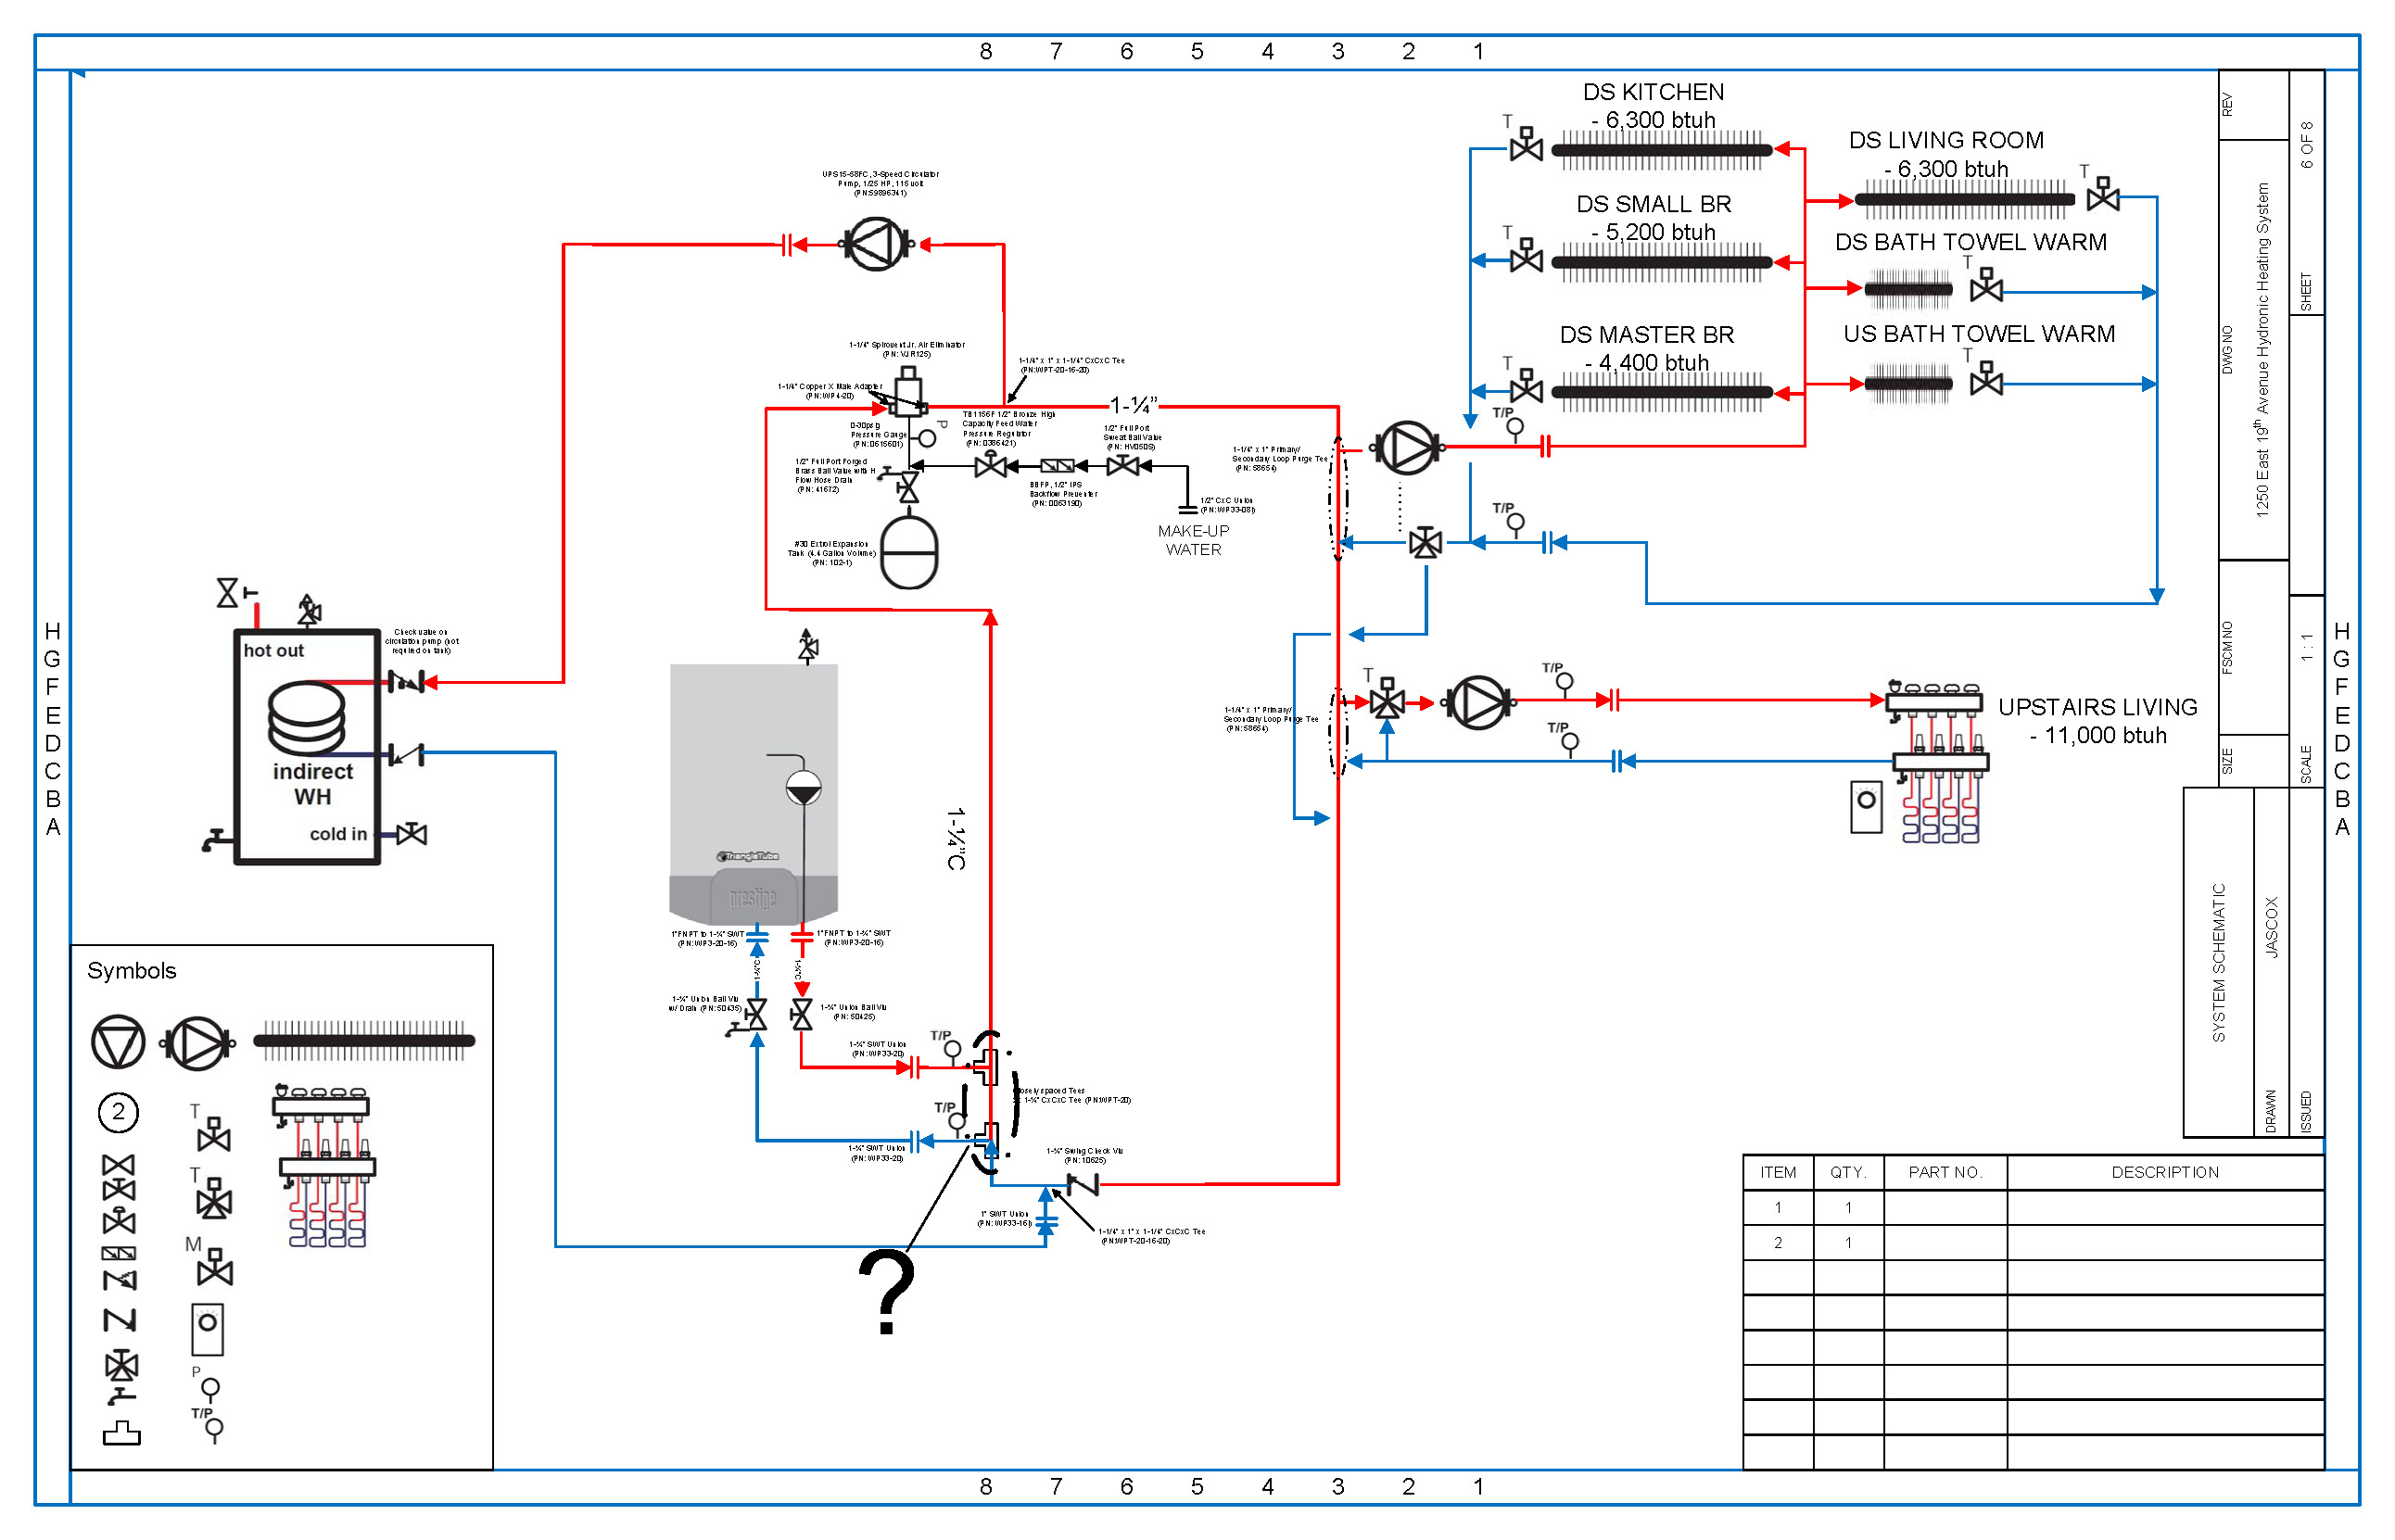 nest thermostat wiring diagram for radiant heat   nest ... nest t stat wiring diagram nest radiant heat wiring diagram